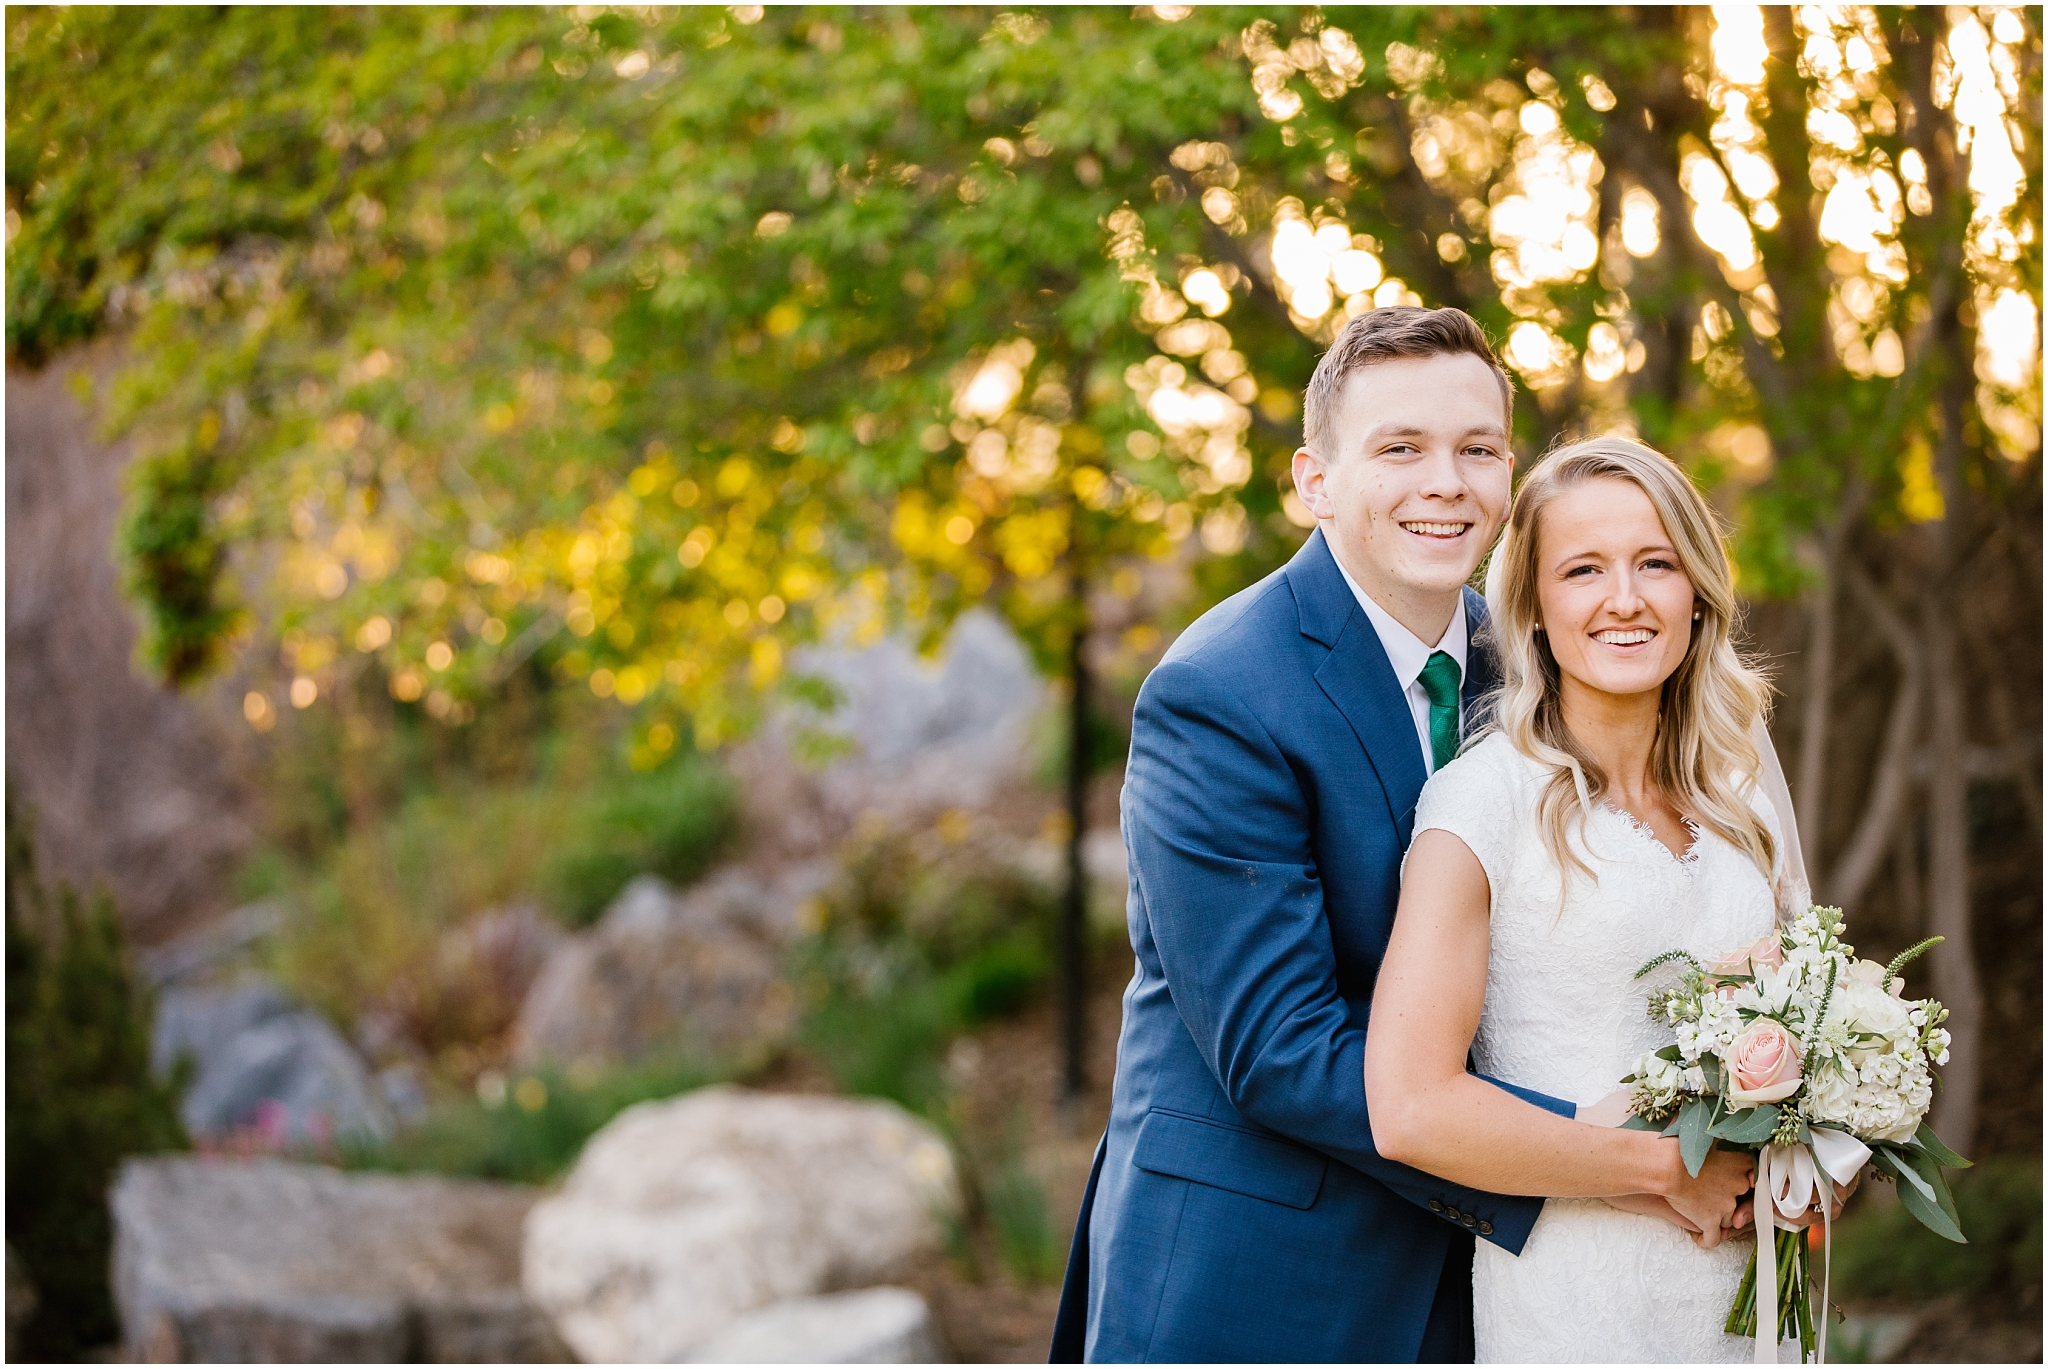 Lizzie-B-Imagery-Utah-Wedding-Photographer-Thanksgiving-Point-Payson-Temple_0019.jpg